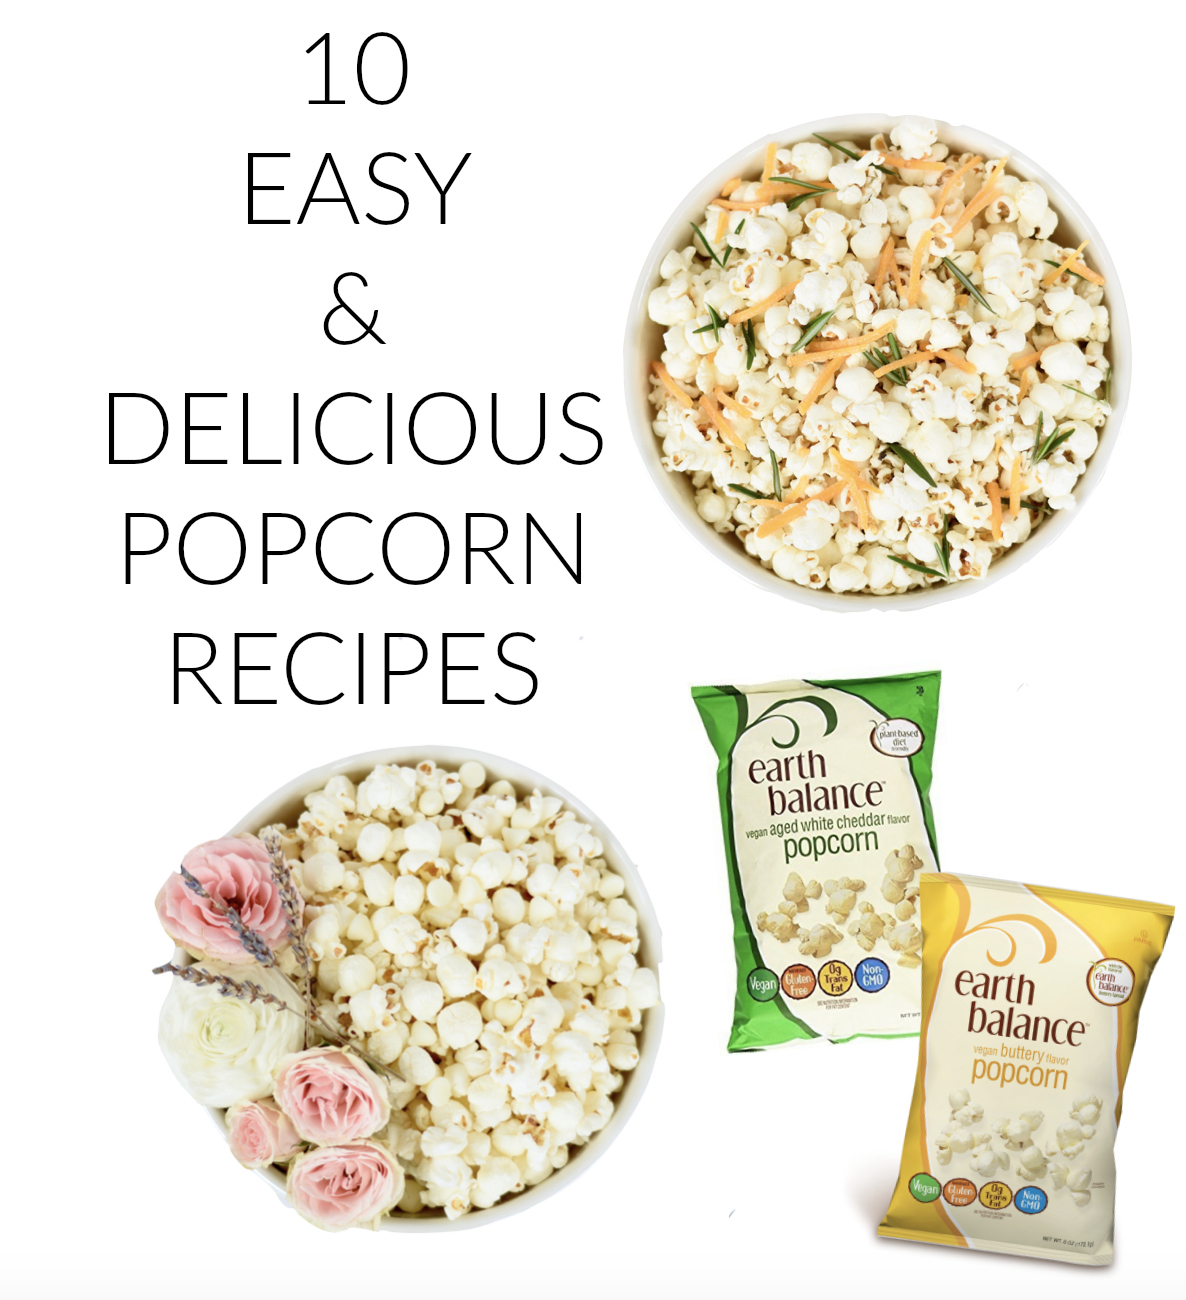 EASY & DELICIOUS POPCORN RECIPES